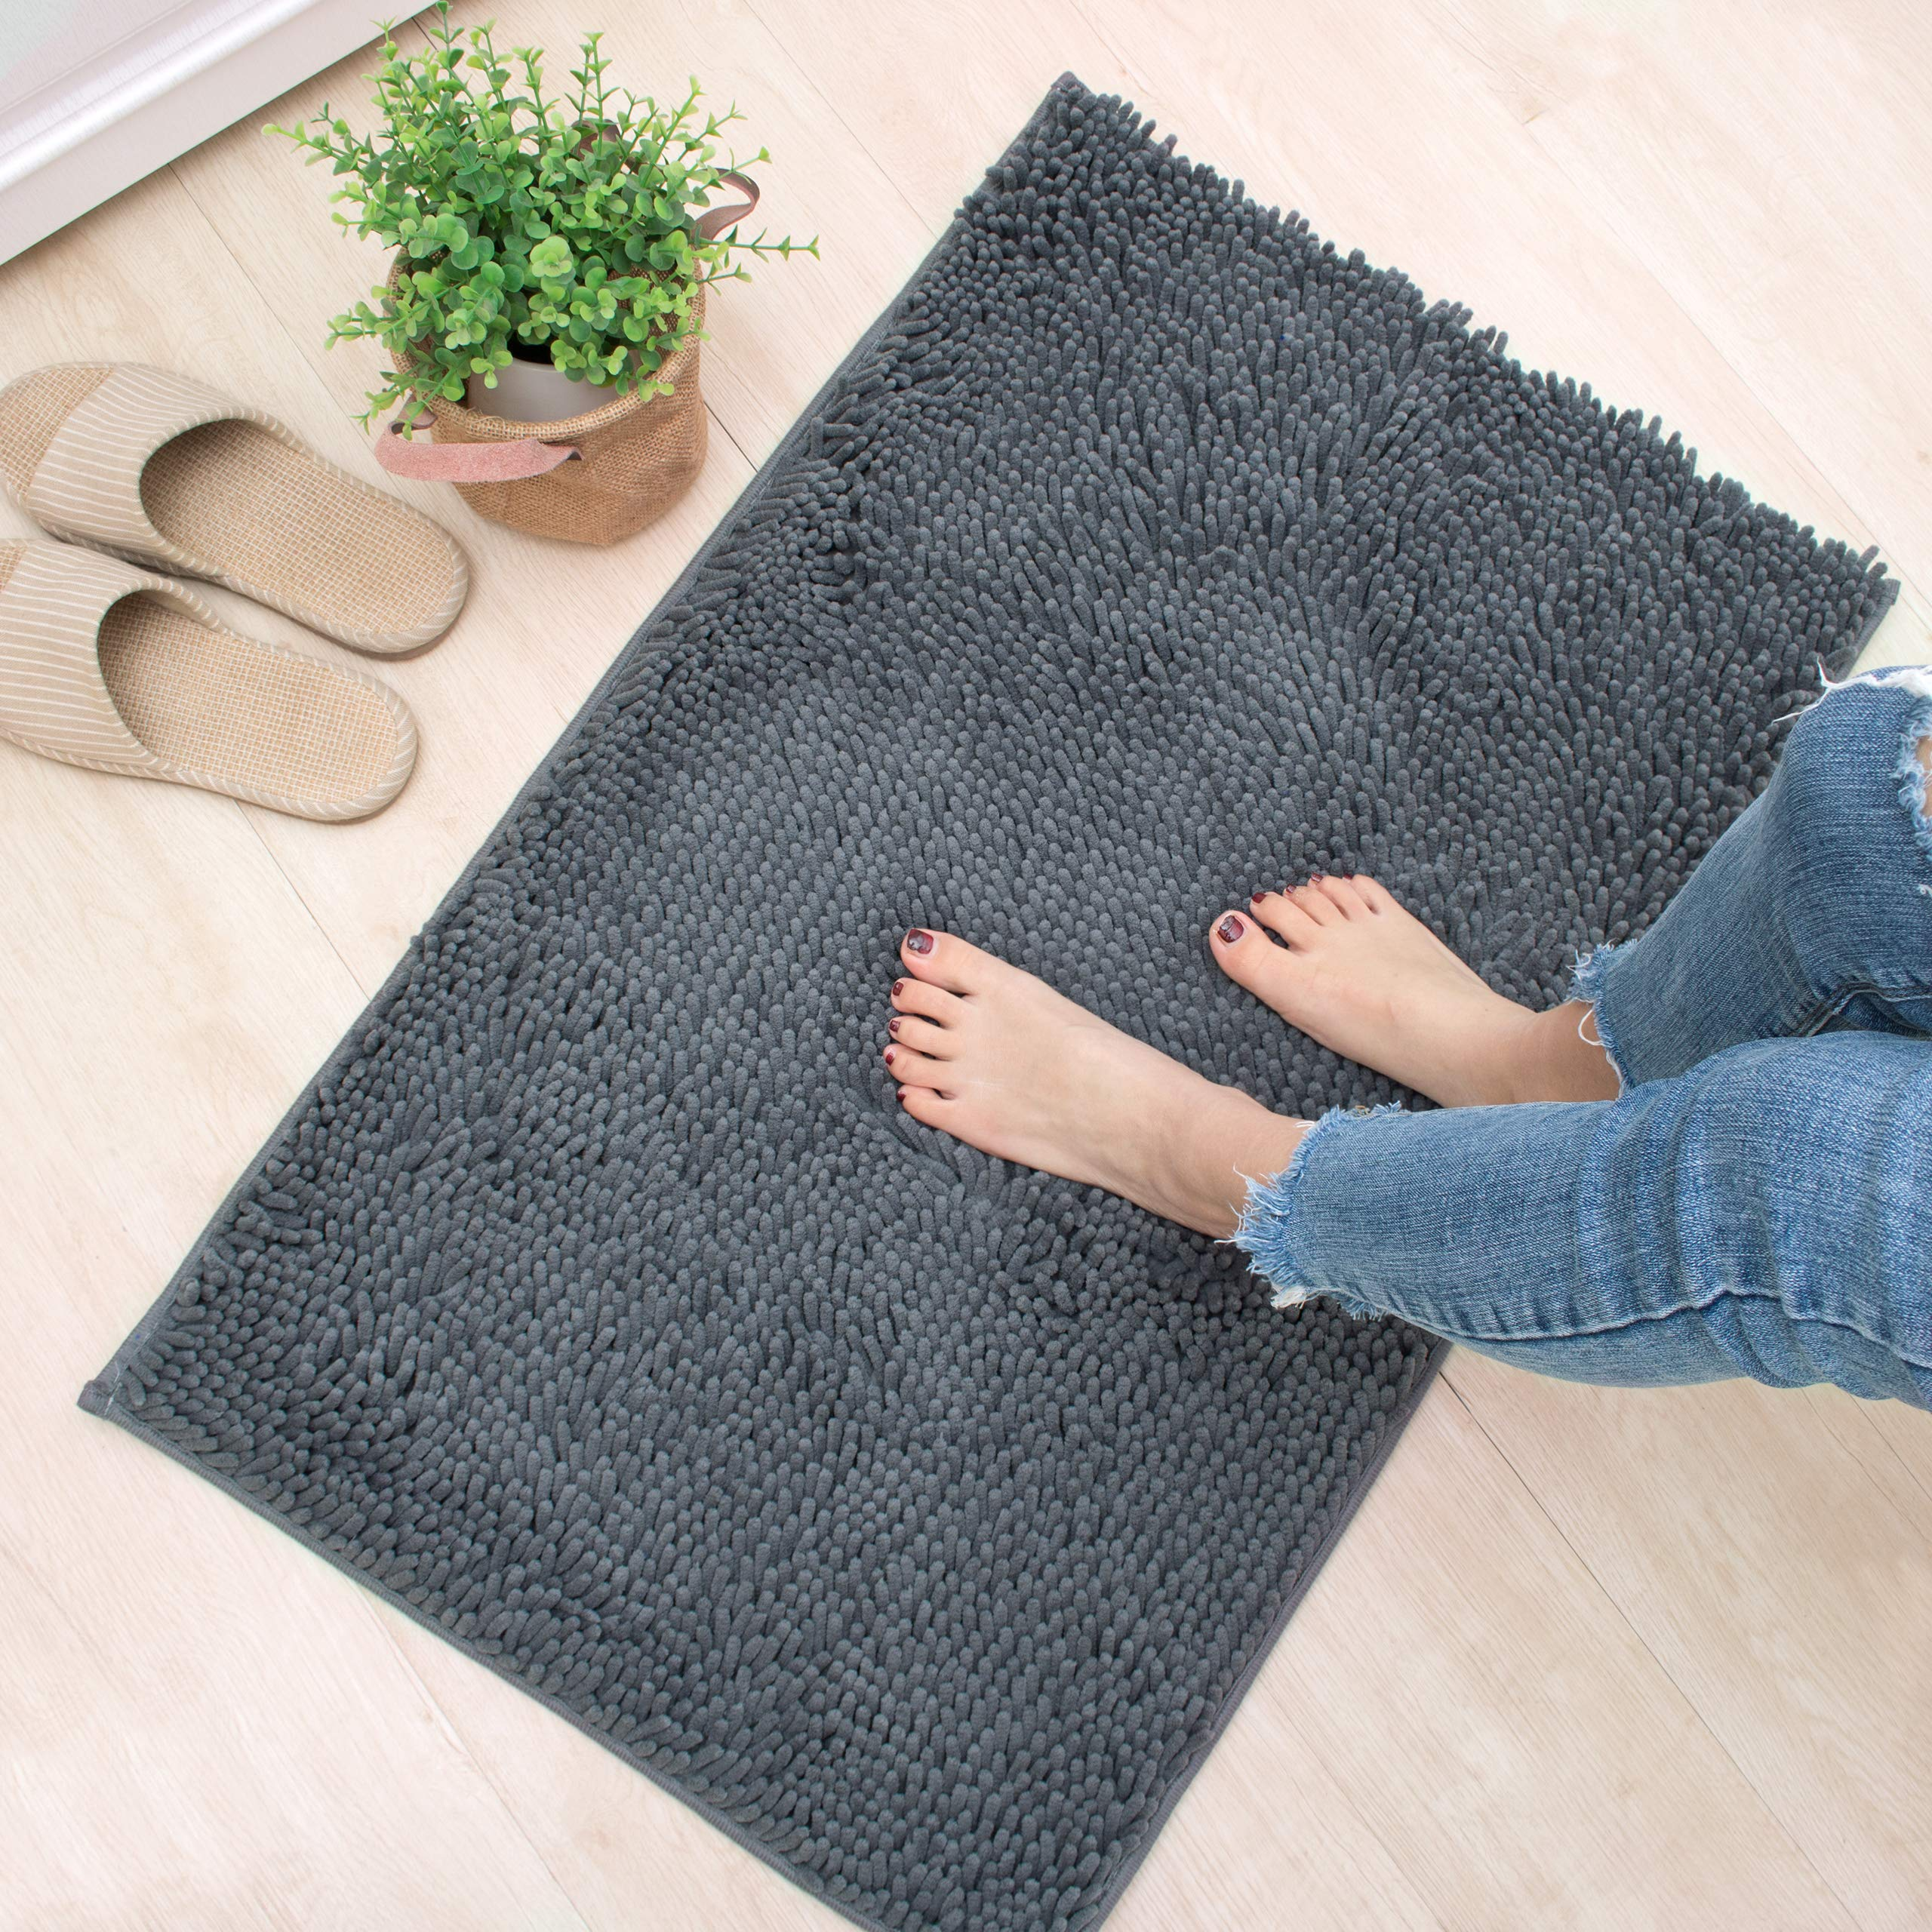 X·SOAR-Bath mats, Soft and Comfortable Bathroom Rugs,Absorbent,Shaggy and Fast Dry Bath Rugs, Non-Slip Kitchen mat.(20''×32'' inch, Iron) by X·SOAR (Image #4)